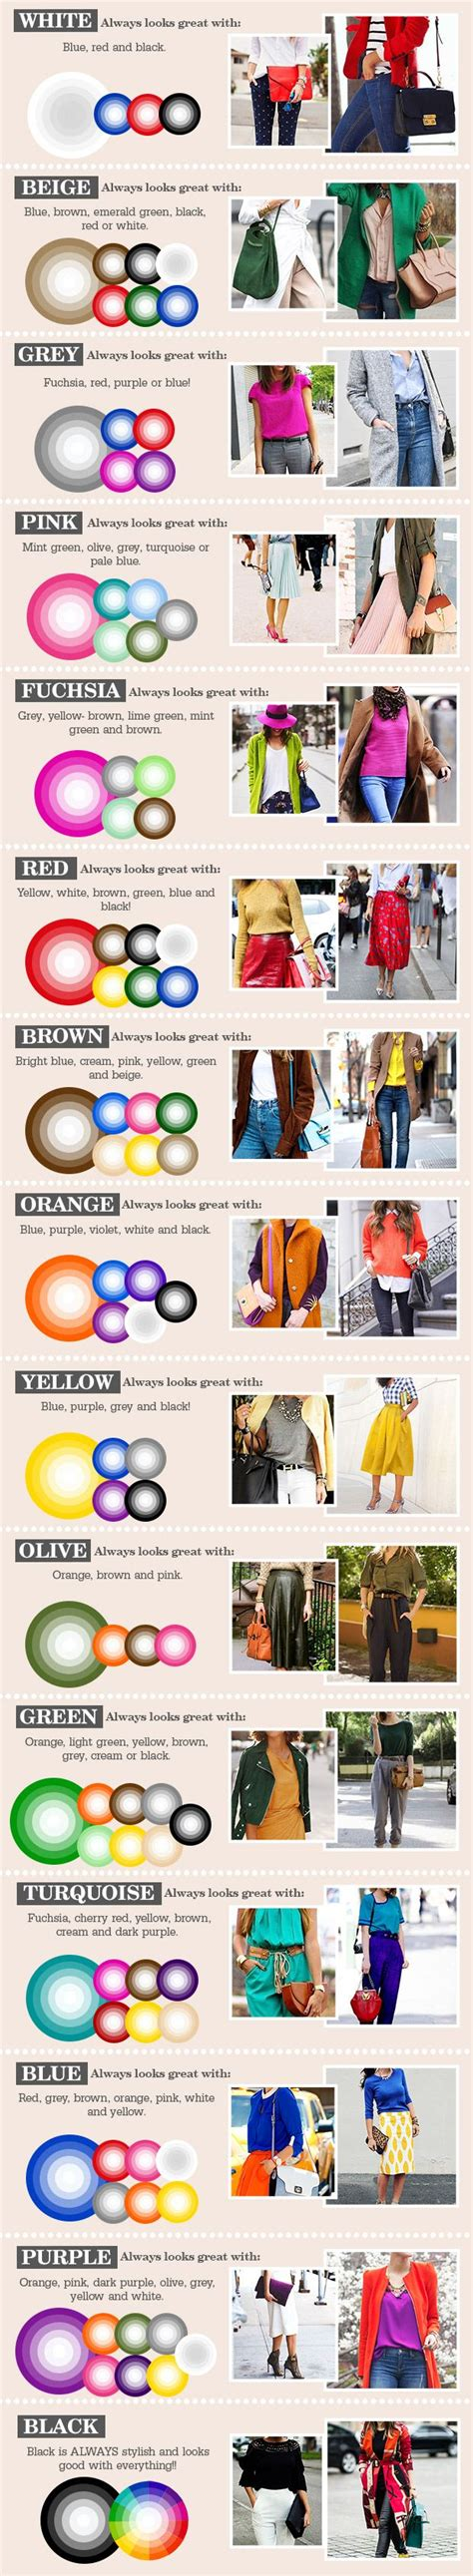 how to match colors best 25 color matching clothes ideas on pinterest color combinations outfits wardrobe color